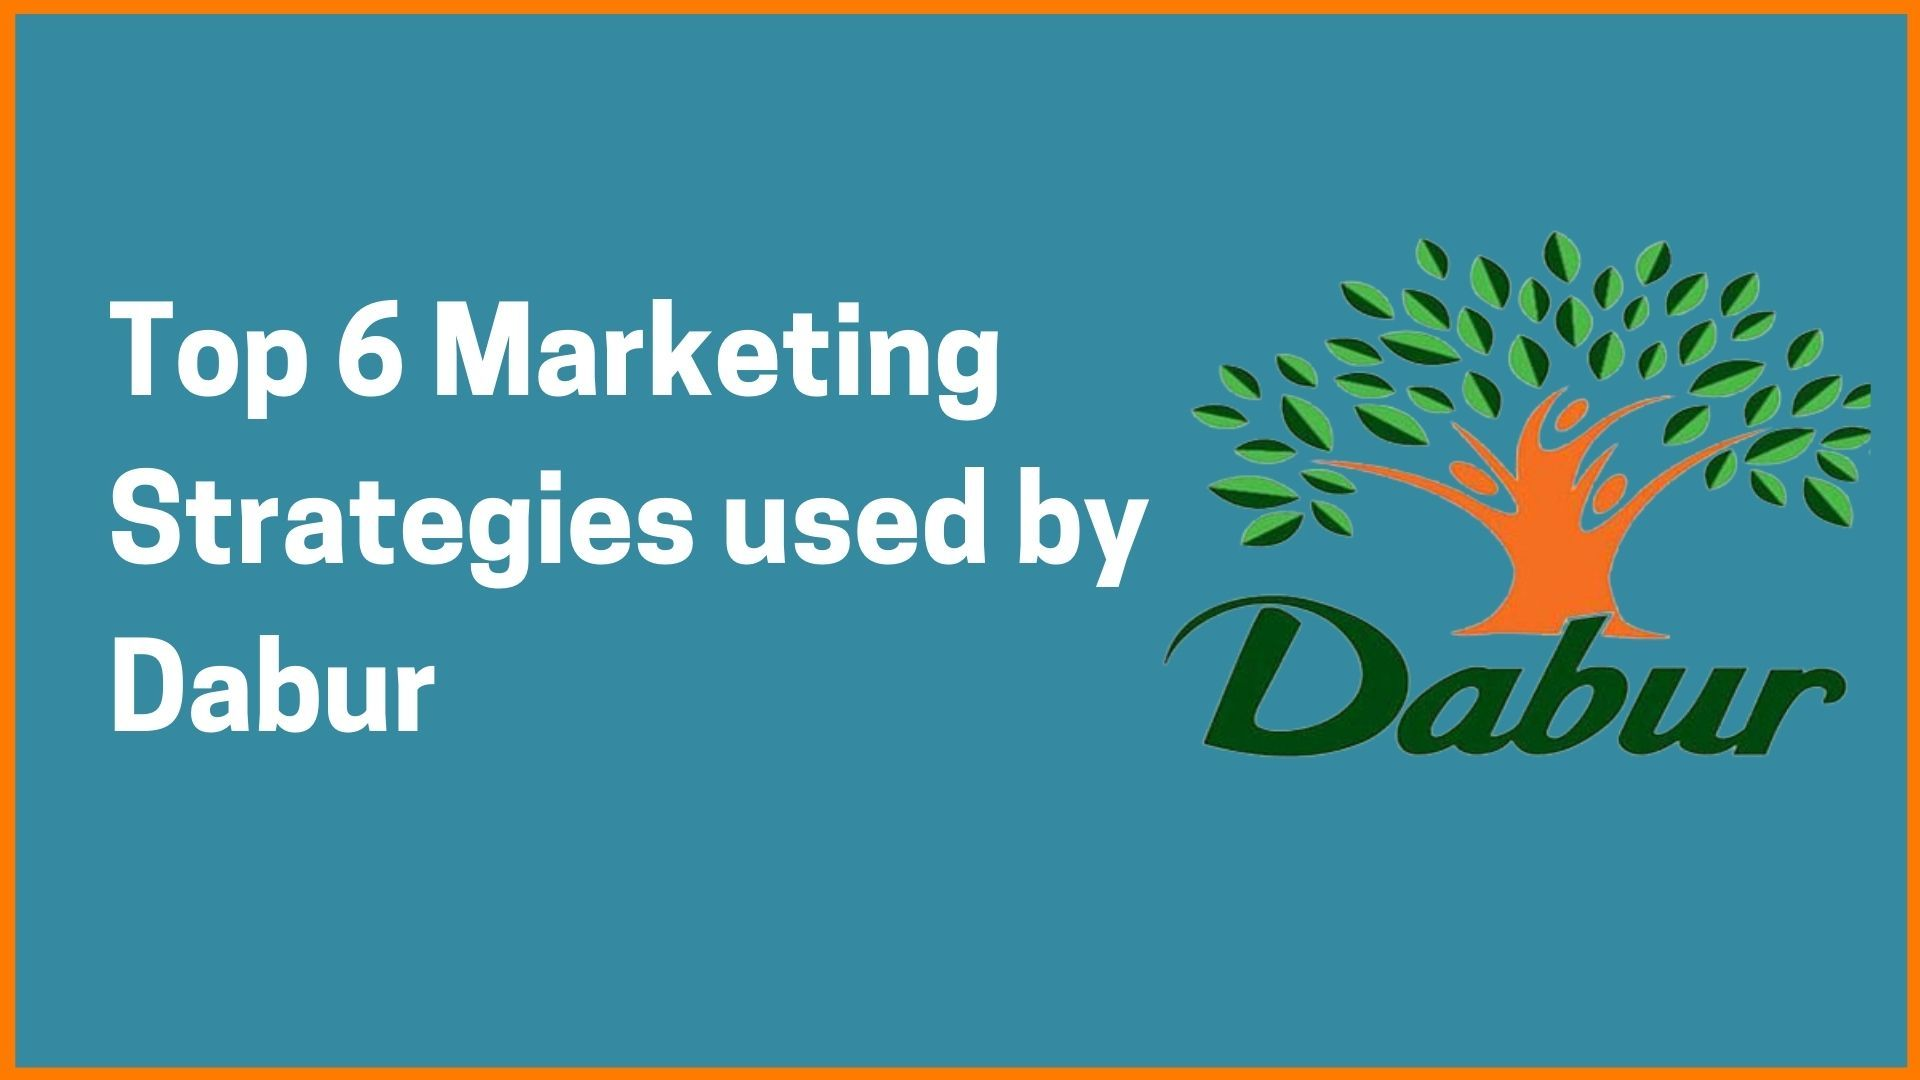 Top 6 Marketing Strategies used by Dabur and Its SWOT Analysis